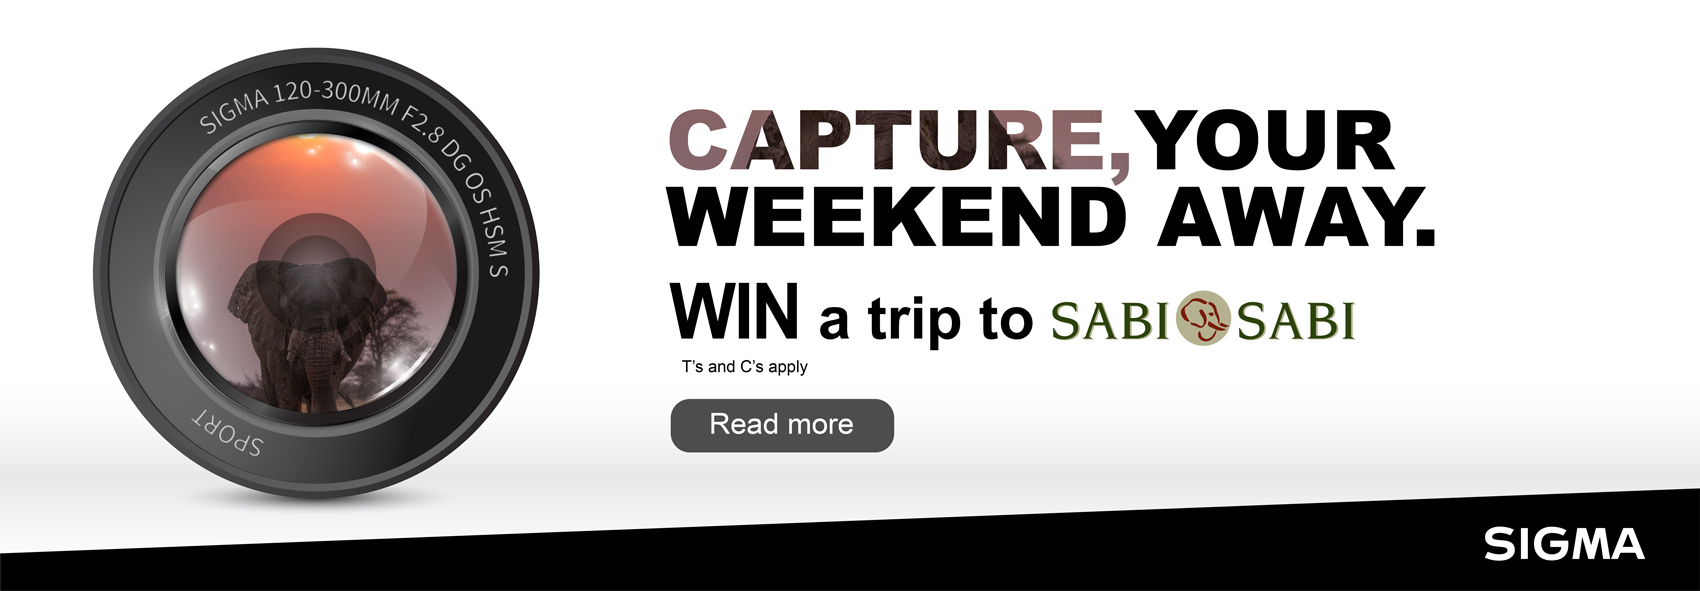 Web-Banner-Capture-Win-Trip-Sigma